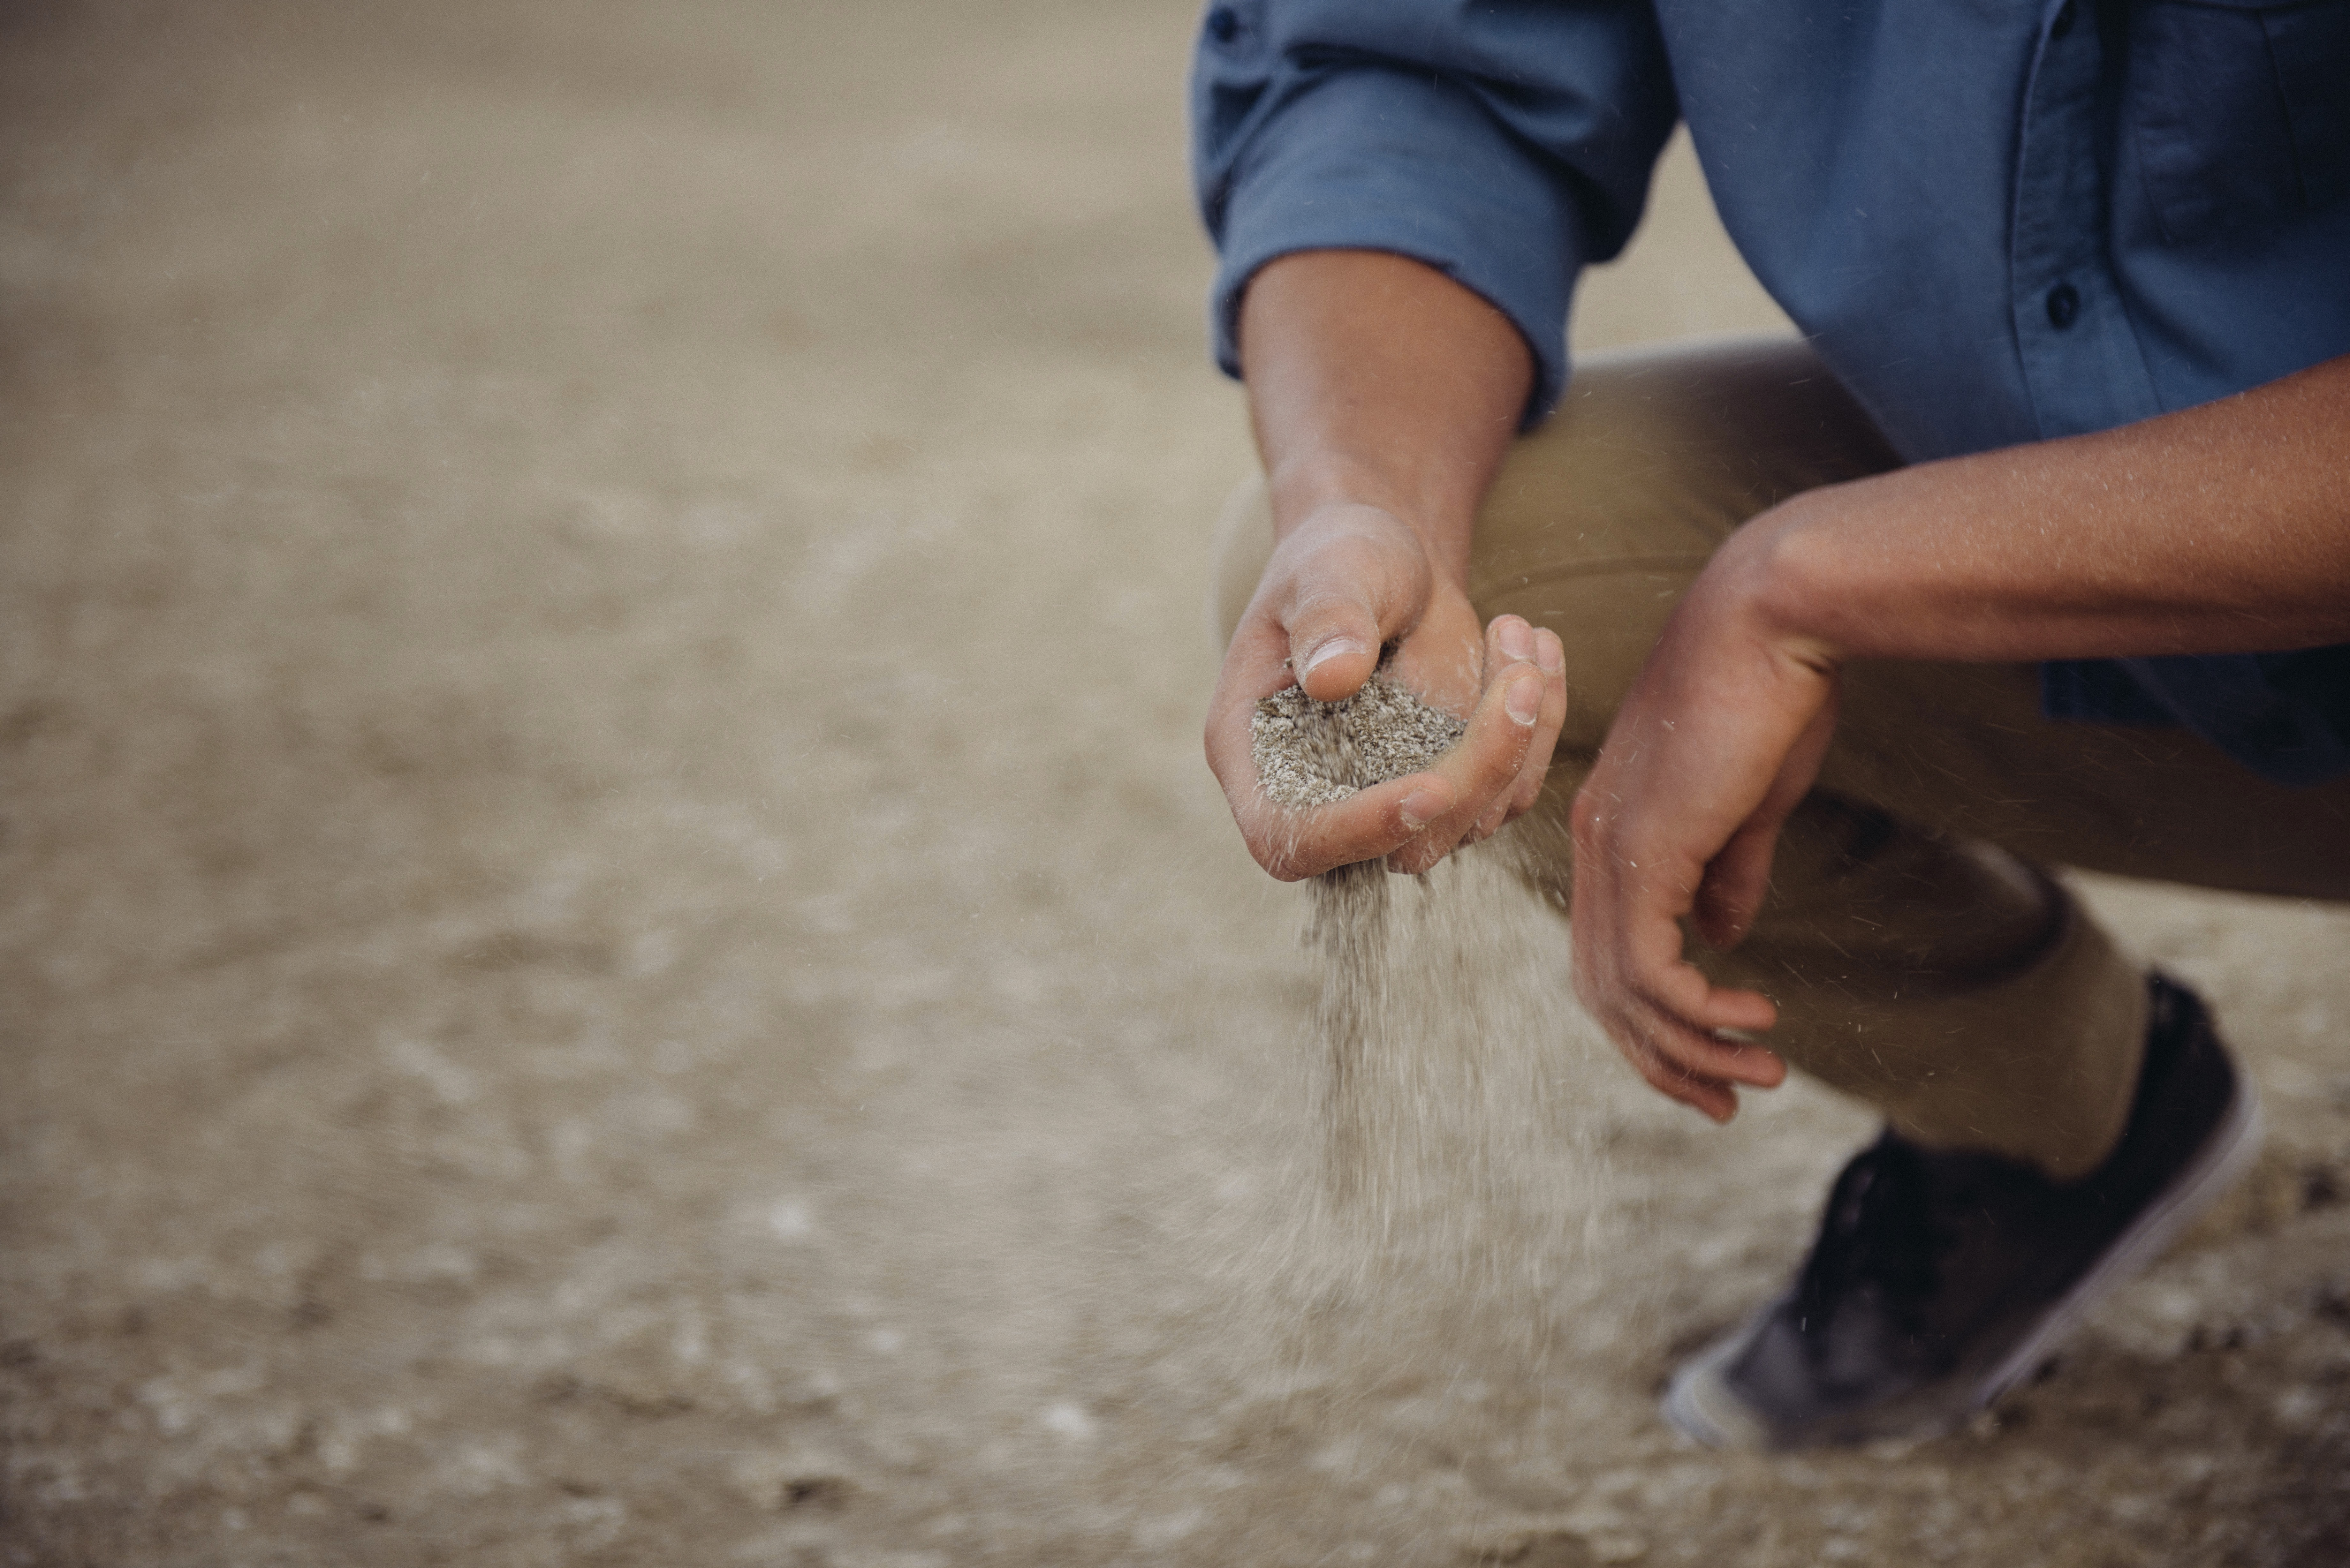 Dry sandy soil runs quickly and easily through your hands.